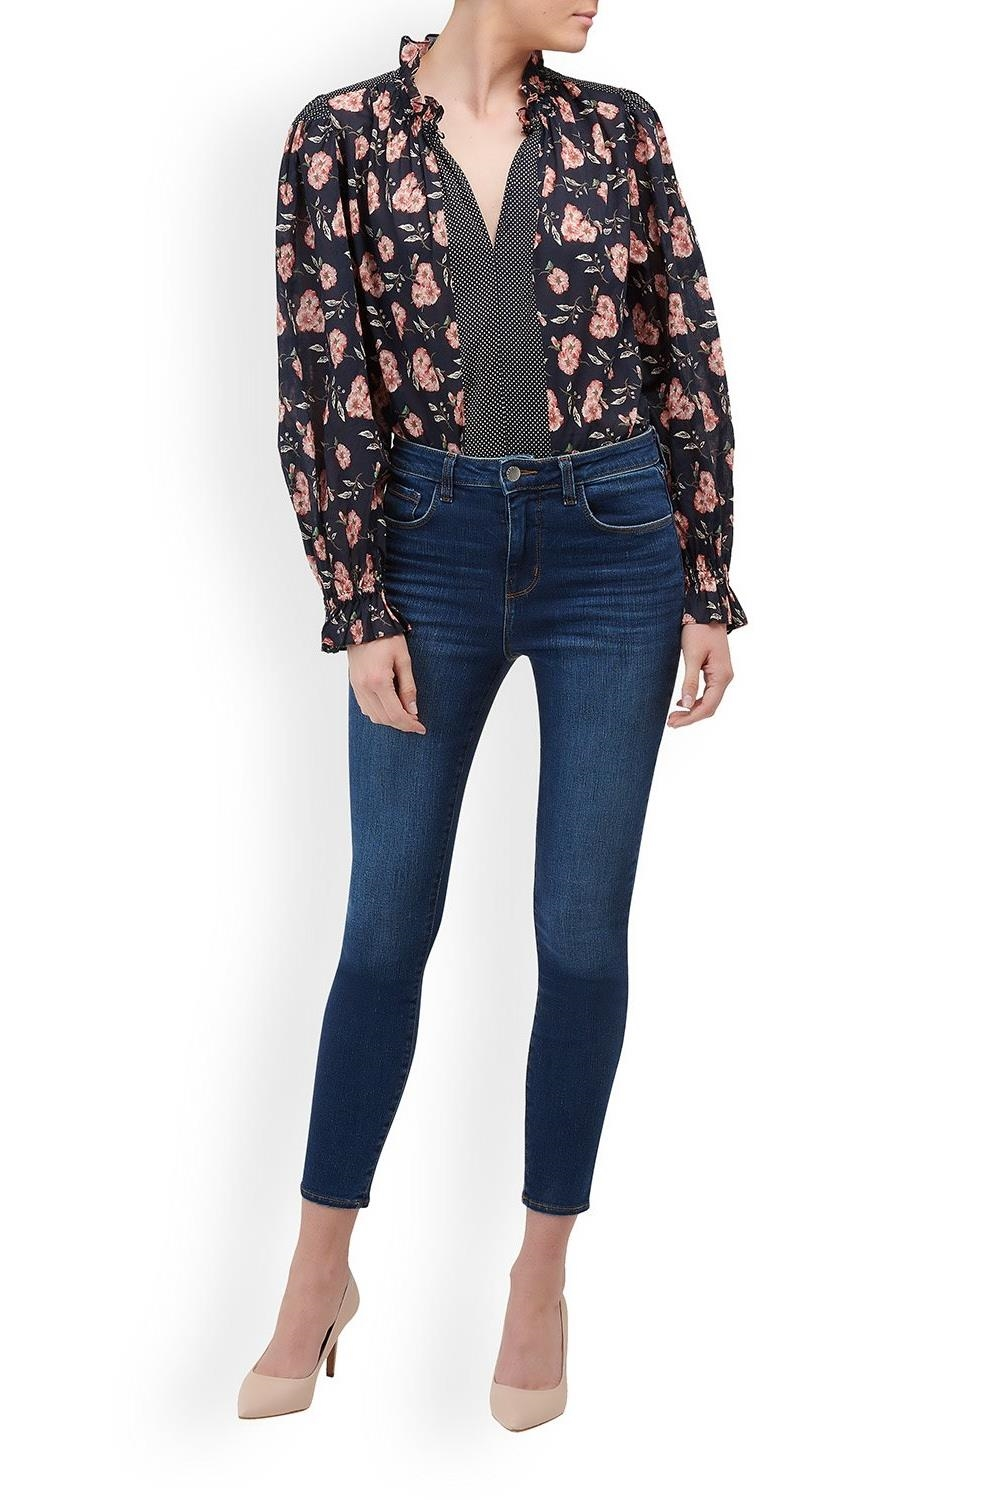 102e71d8f16926 Rebecca Taylor La Vie. Long Sleeve Adelle Scarf Print Top in Navy Combo.  £190.00. 1   4